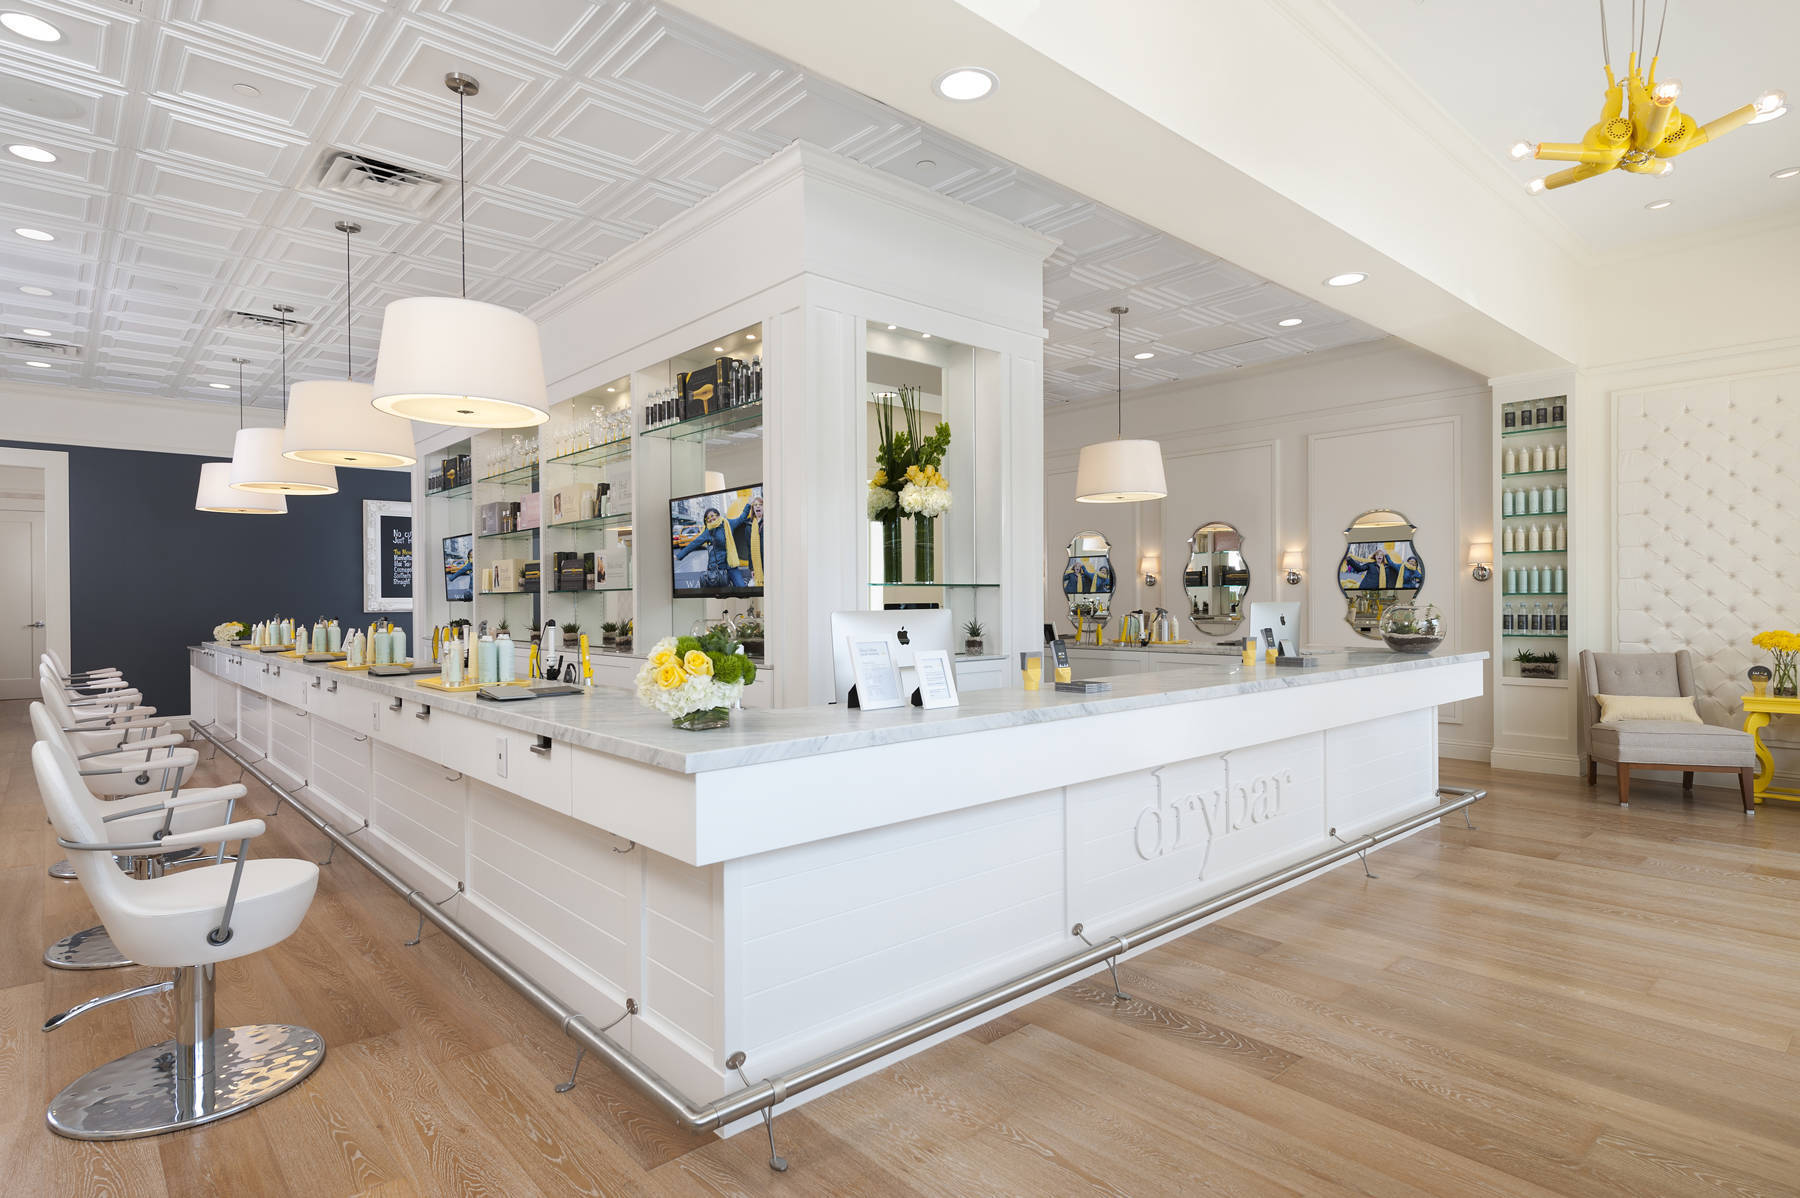 Drybar Blows Into Summit Summit Nj News Tapinto